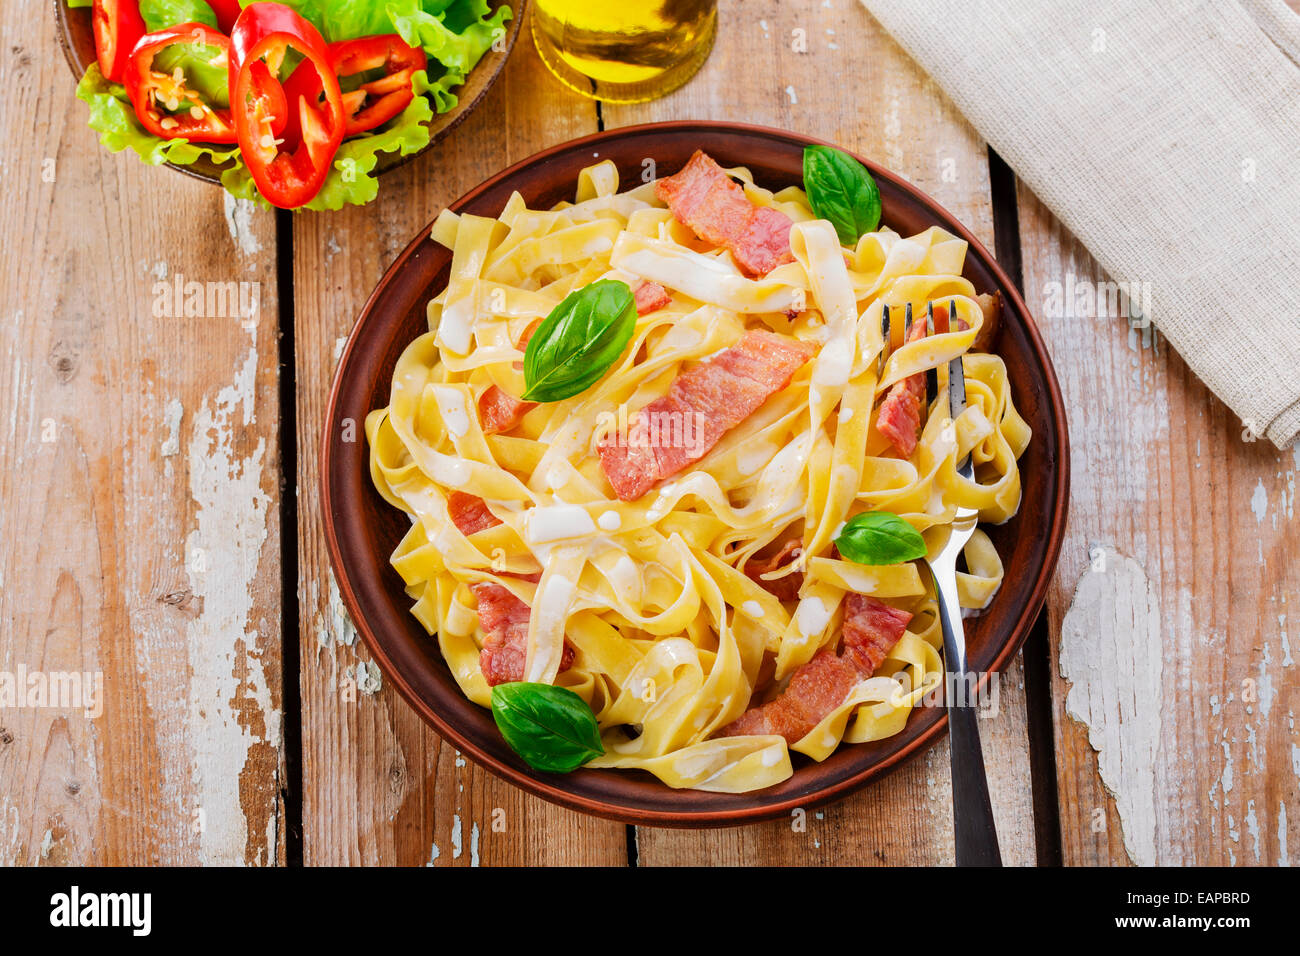 pasta carbonara with bacon and sauce - Stock Image